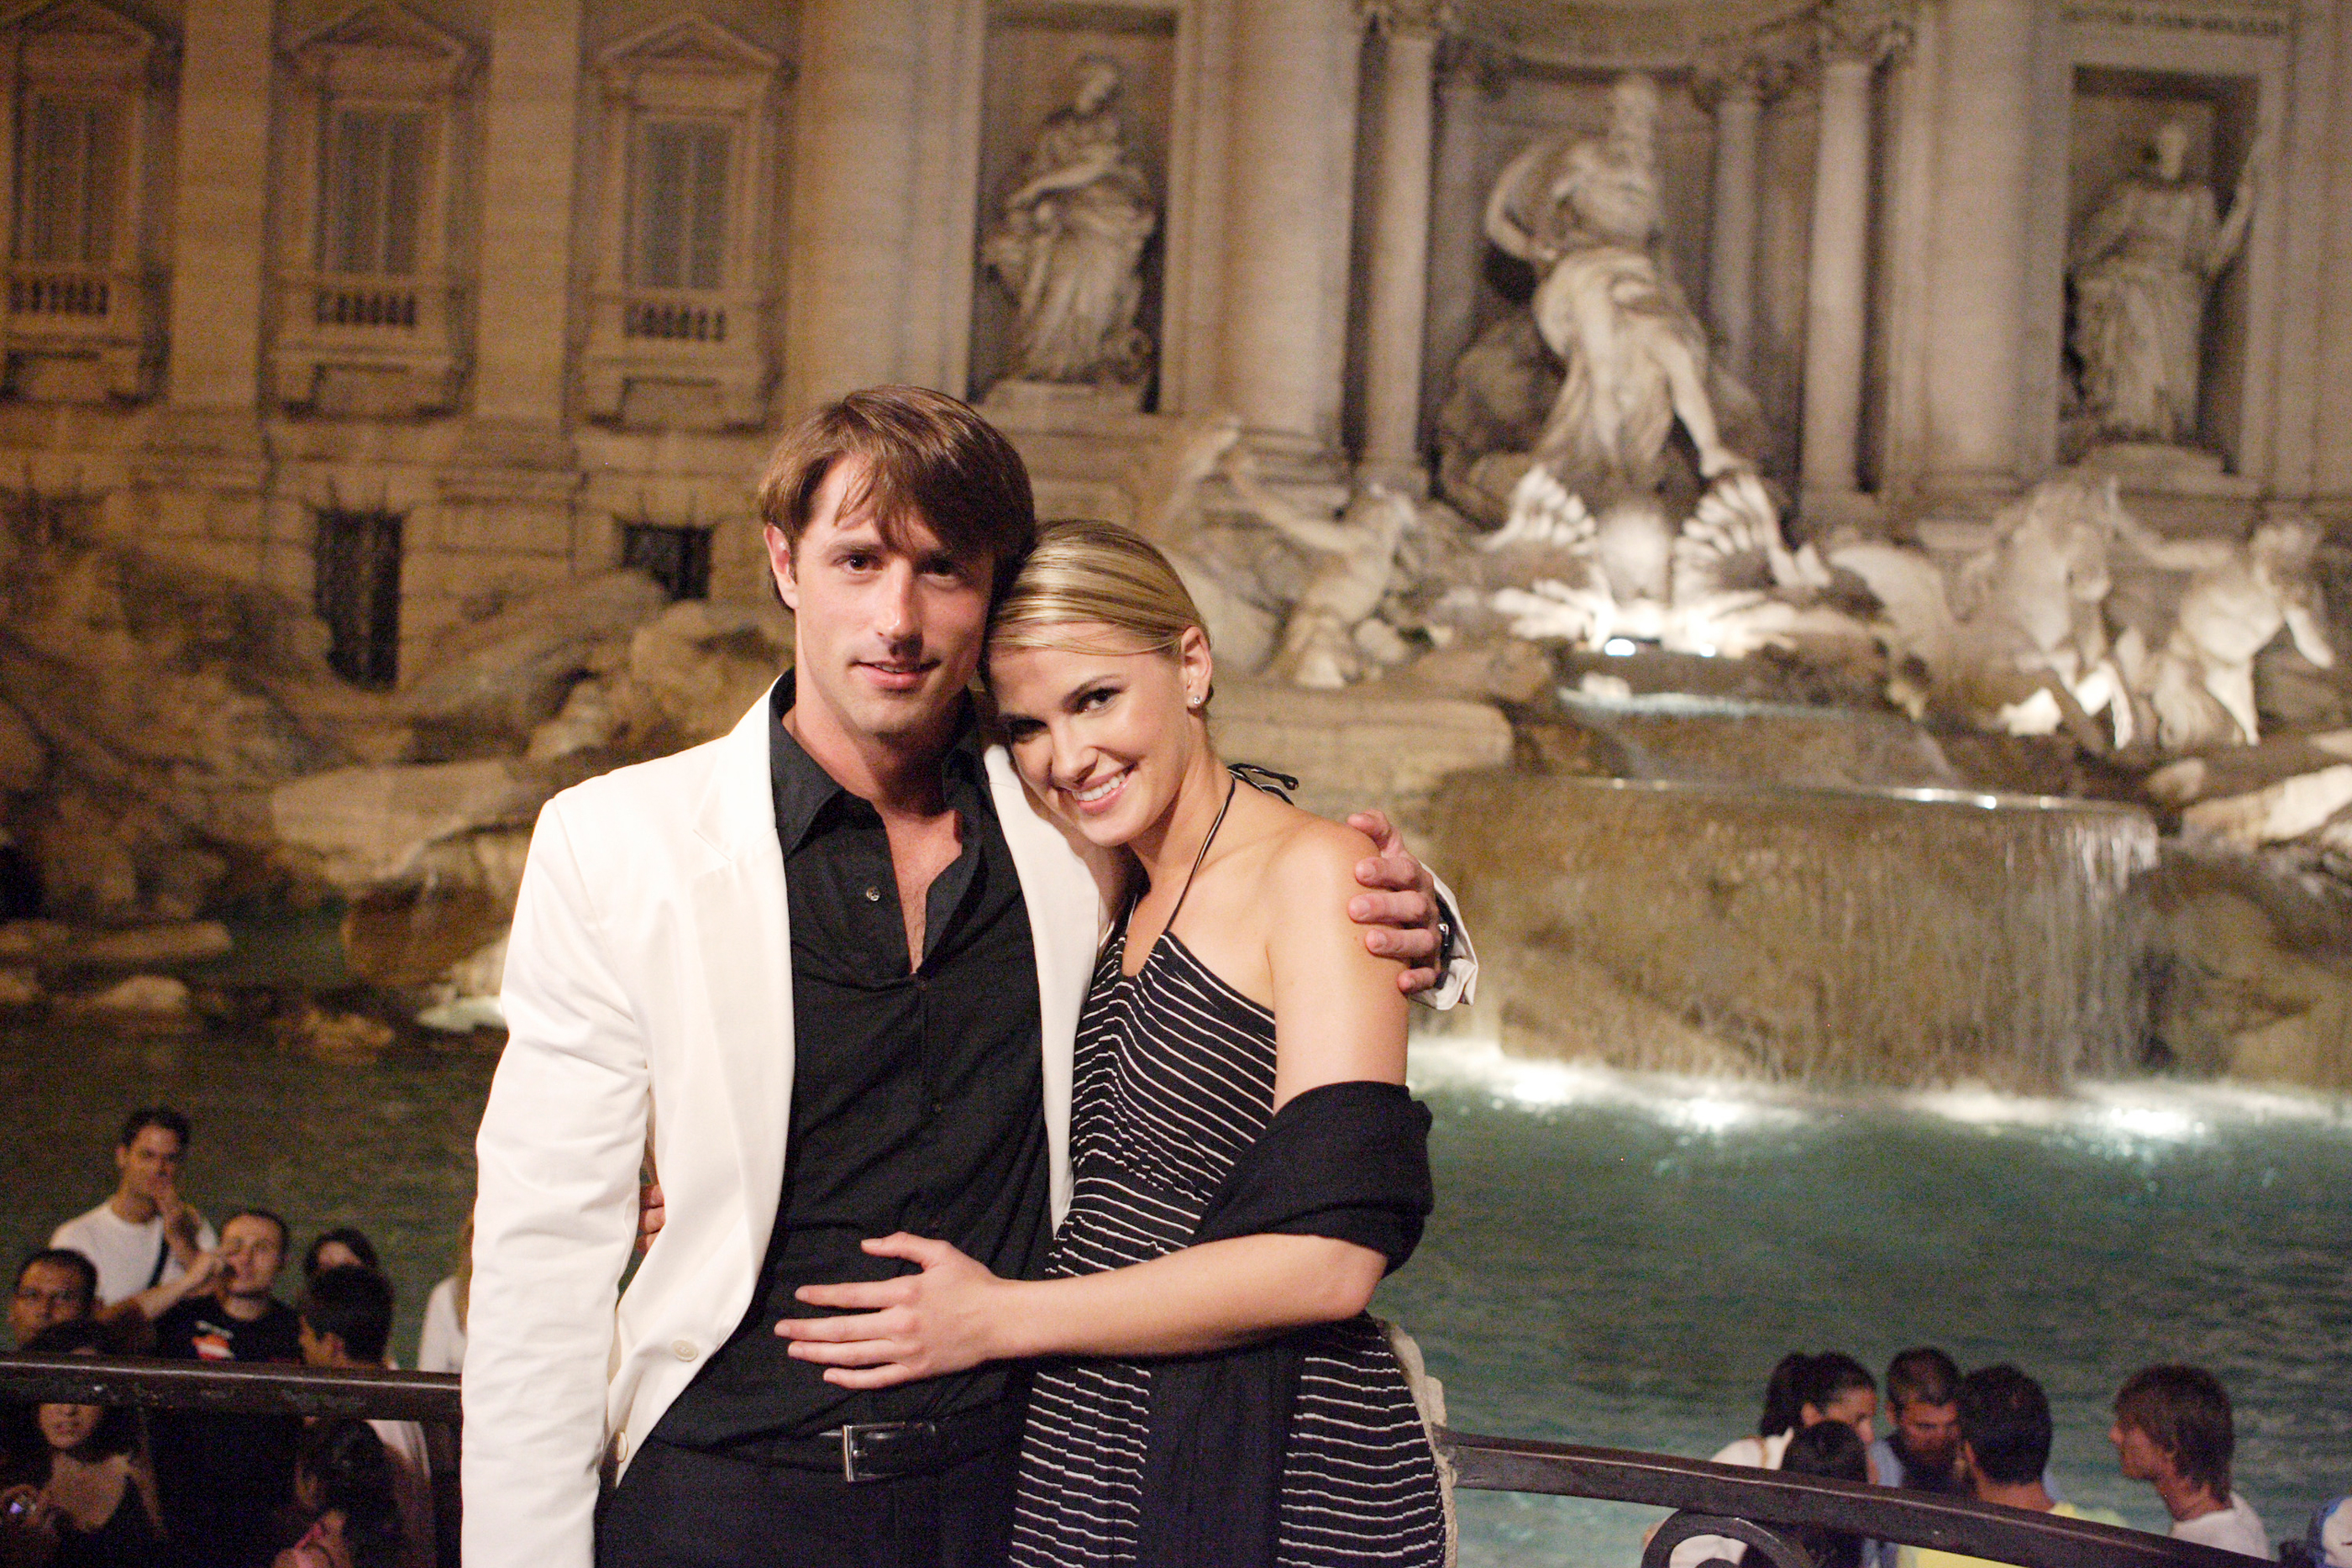 """THE BACHELOR: ROME - """"Episode 904"""" - Lorenzo shares a private dinner with Jennifer in front of the Vatican, which also happens to have the Borghese name on its faade. Then they take a romantic carriage ride to the famous Trevi Fountain, on """"The Bachelor: Rome,"""" MONDAY, OCTOBER 23 (9:00-10:00 p.m., ET) on ABC."""